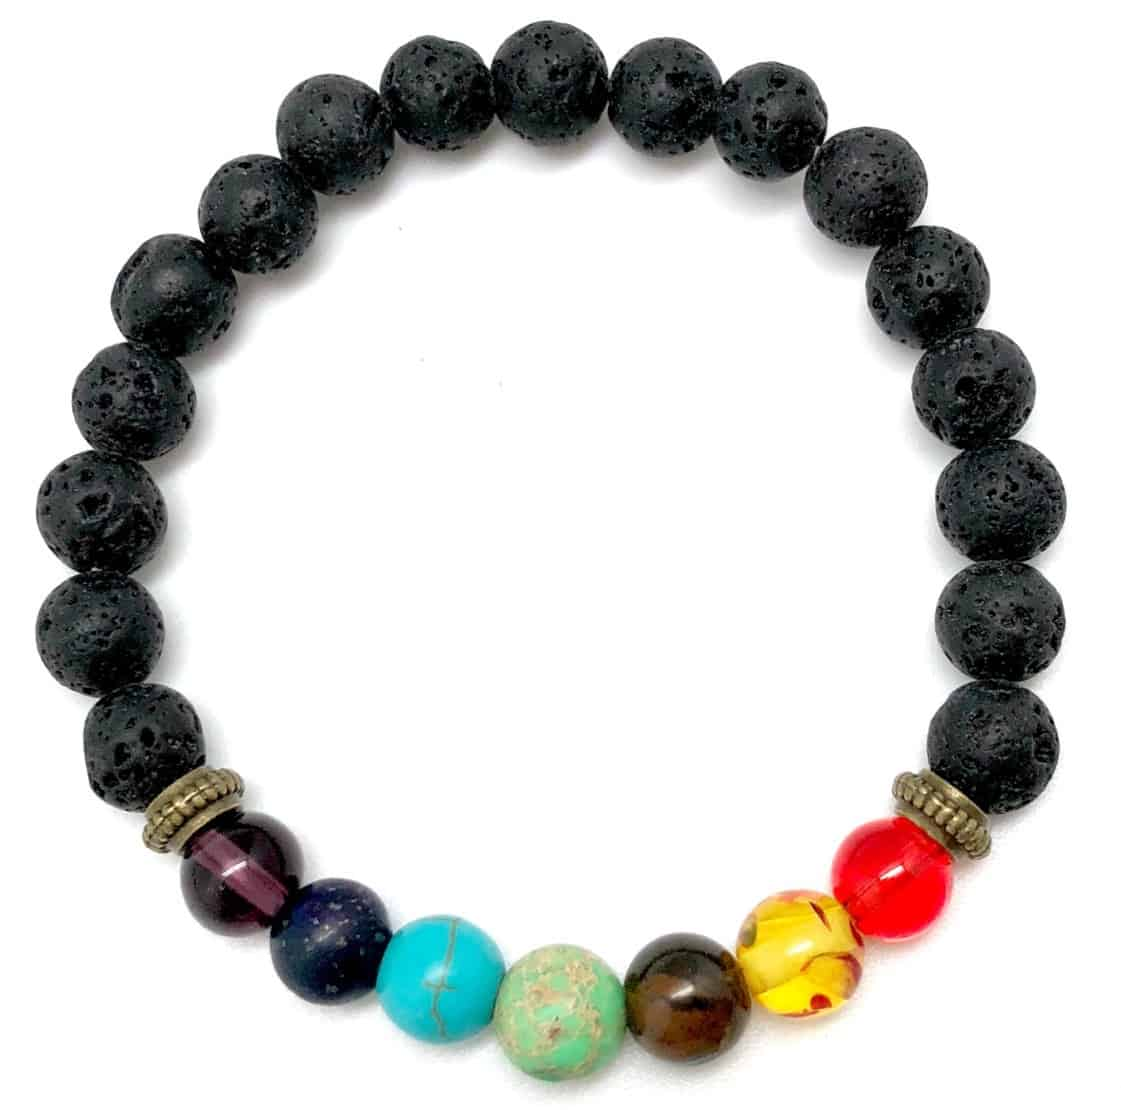 Gemstone Bracelet with Lava Beads For Essential Oils